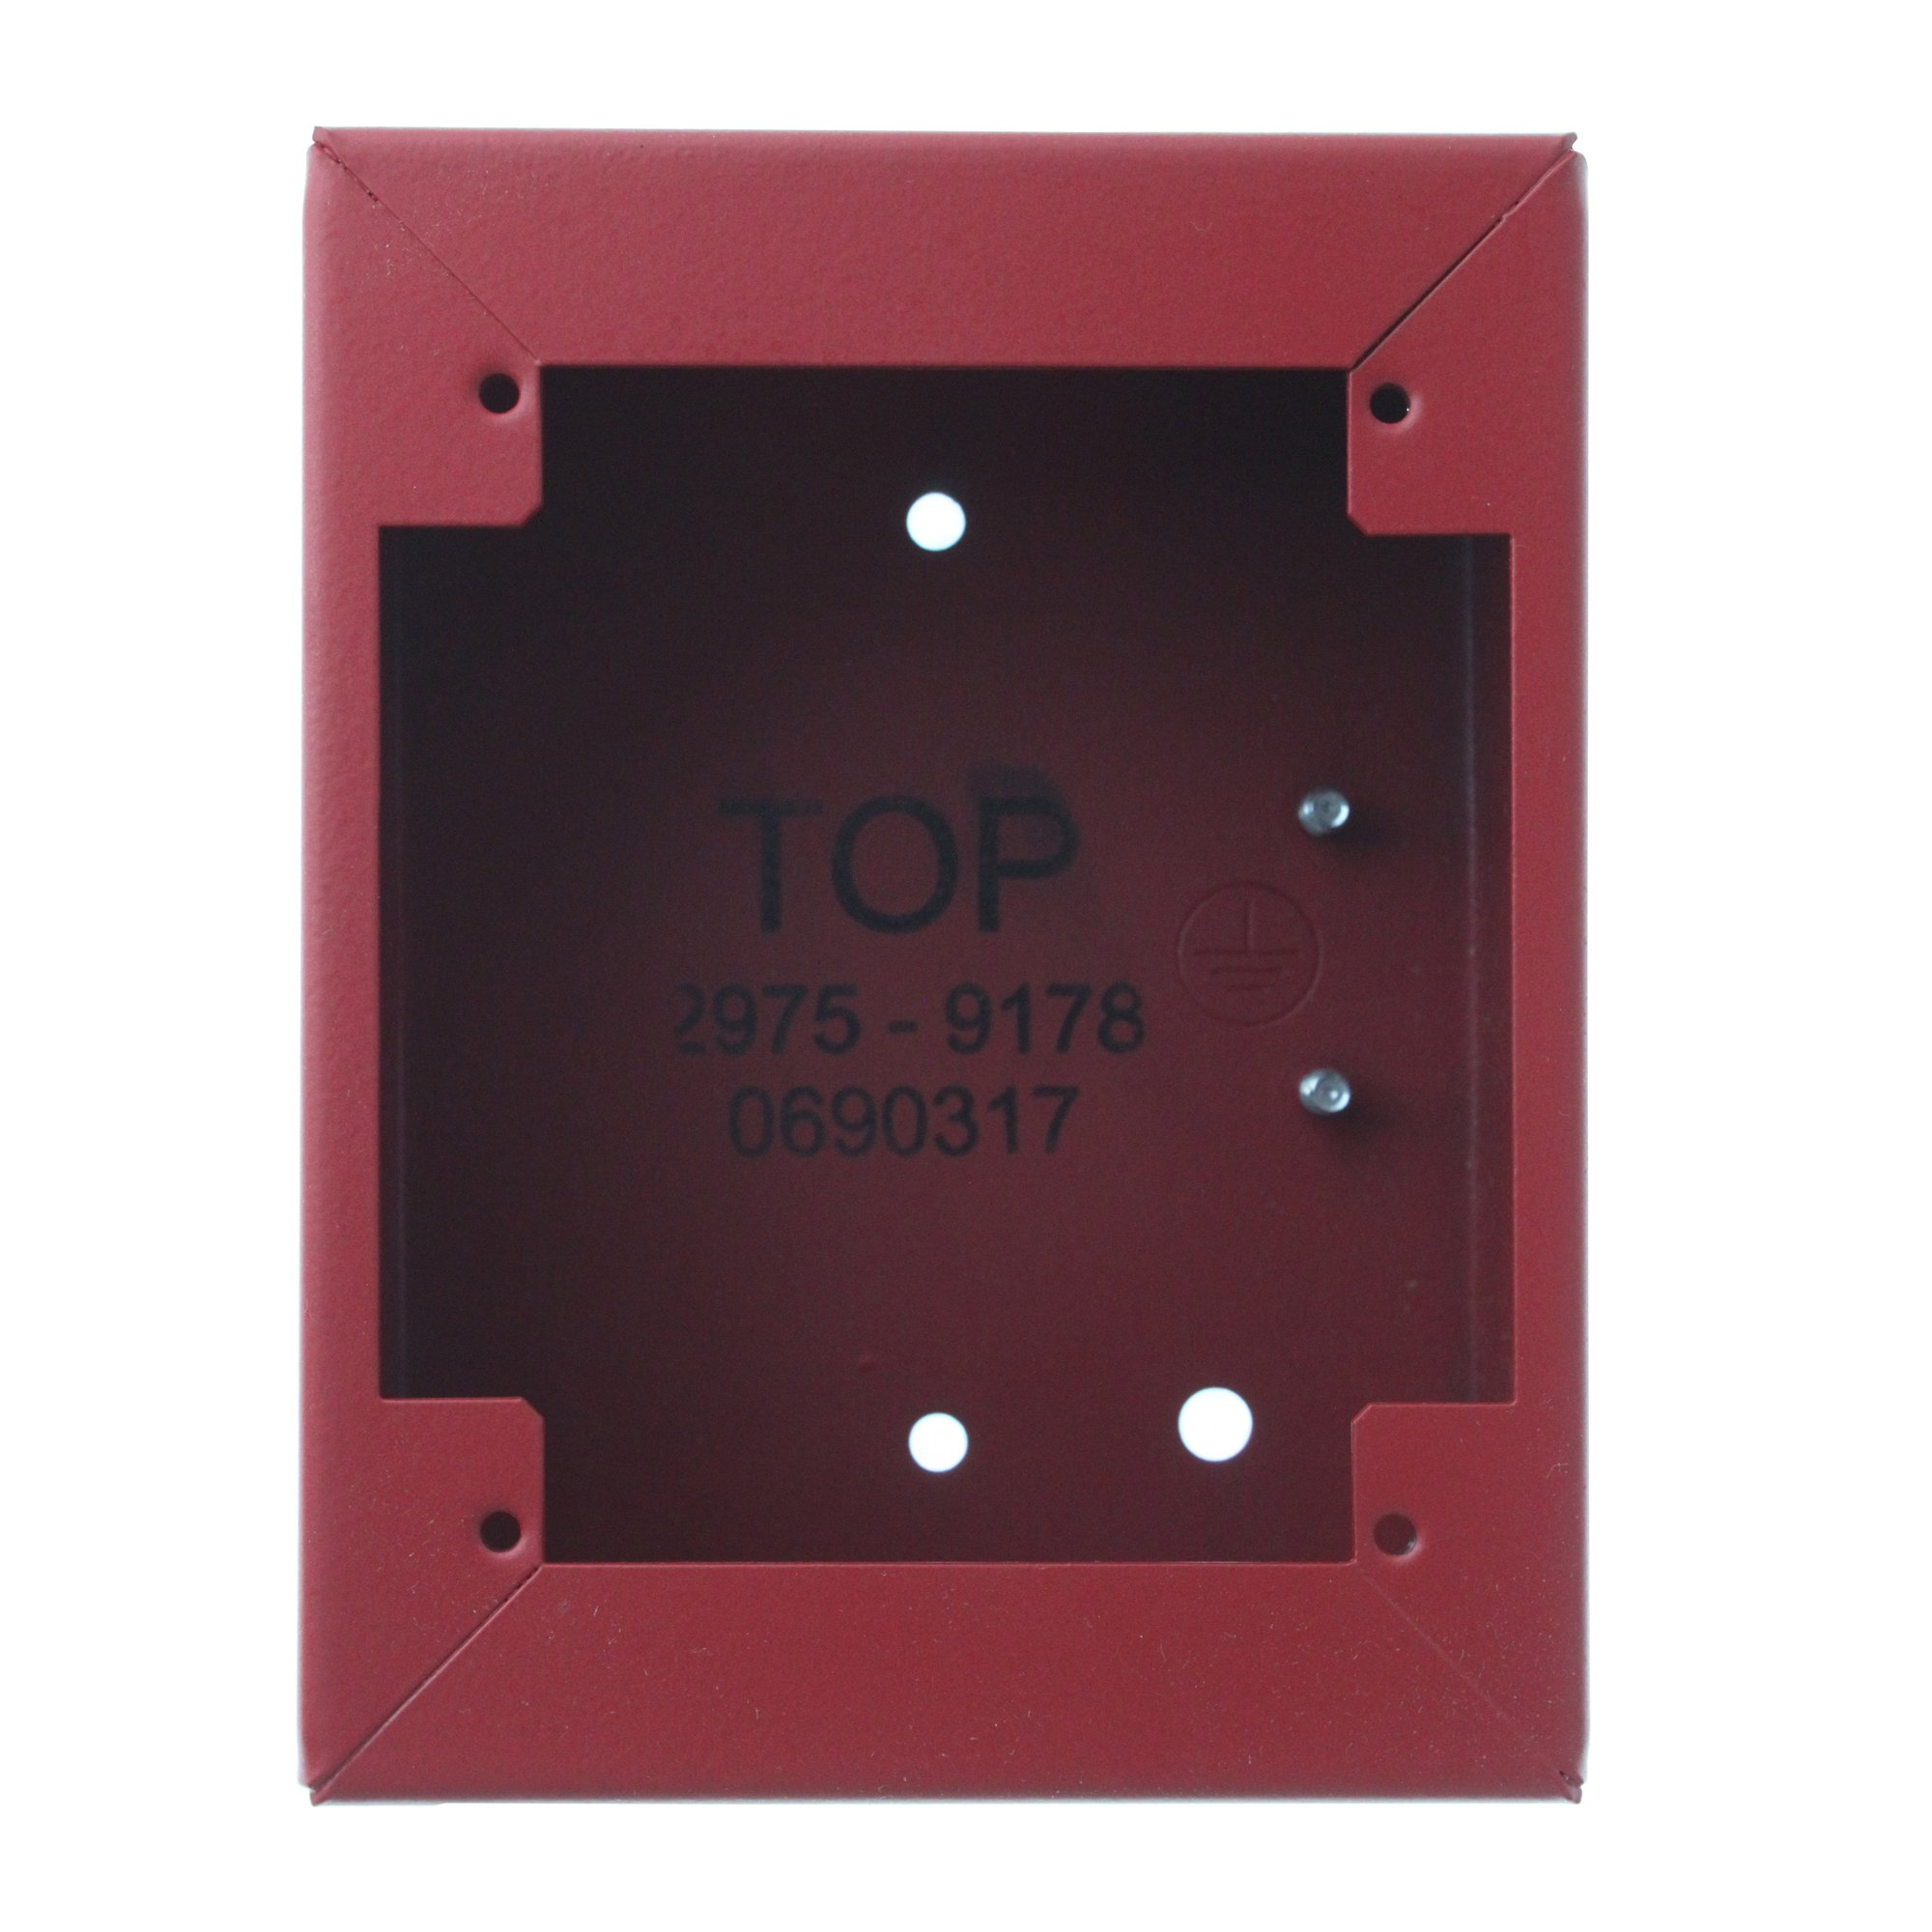 Simplex 2975-9178 0690317 Pull Station Surface Mount Steel Back Box, Red by Simplex